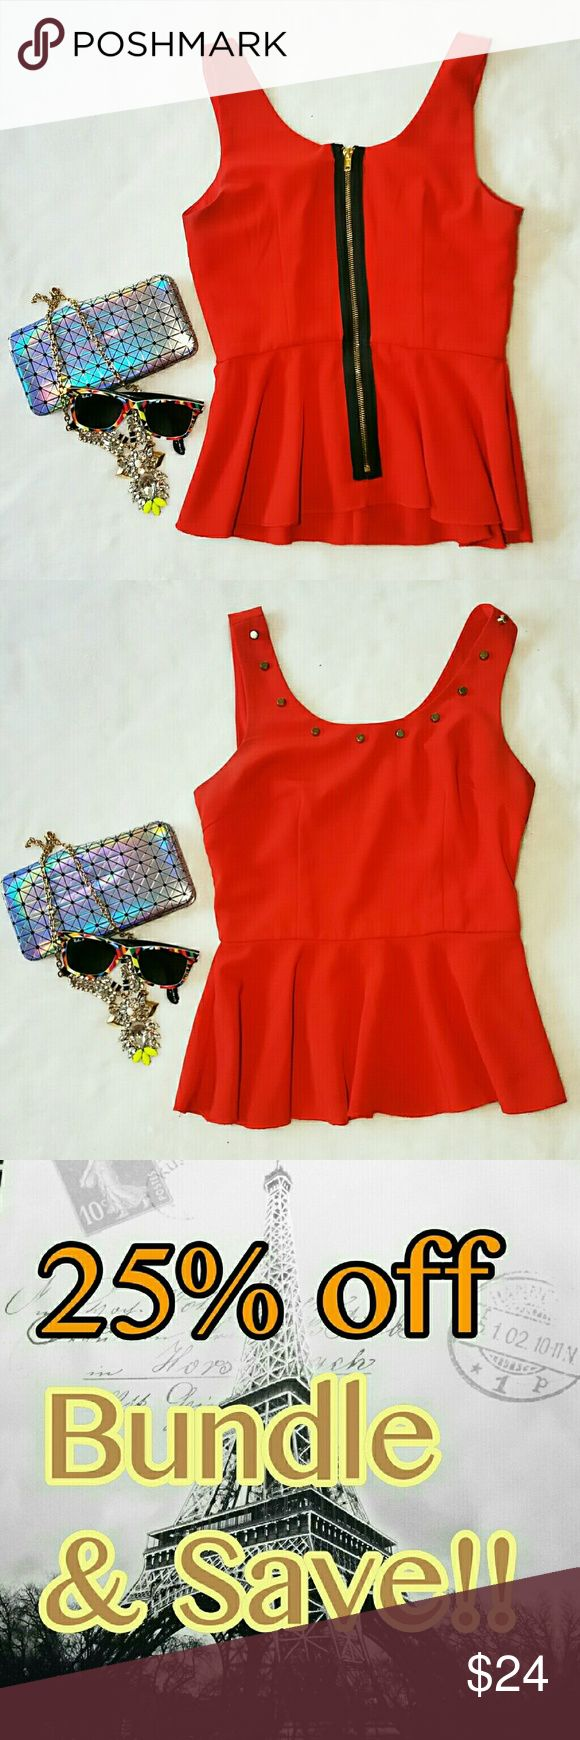 ⏳ GUESS Peplum Top Red Black Zipper Back Small Gorgeous GUESS bright red studded neckline, with a nice zippered back. Size small Peplum Guess Tops Blouses